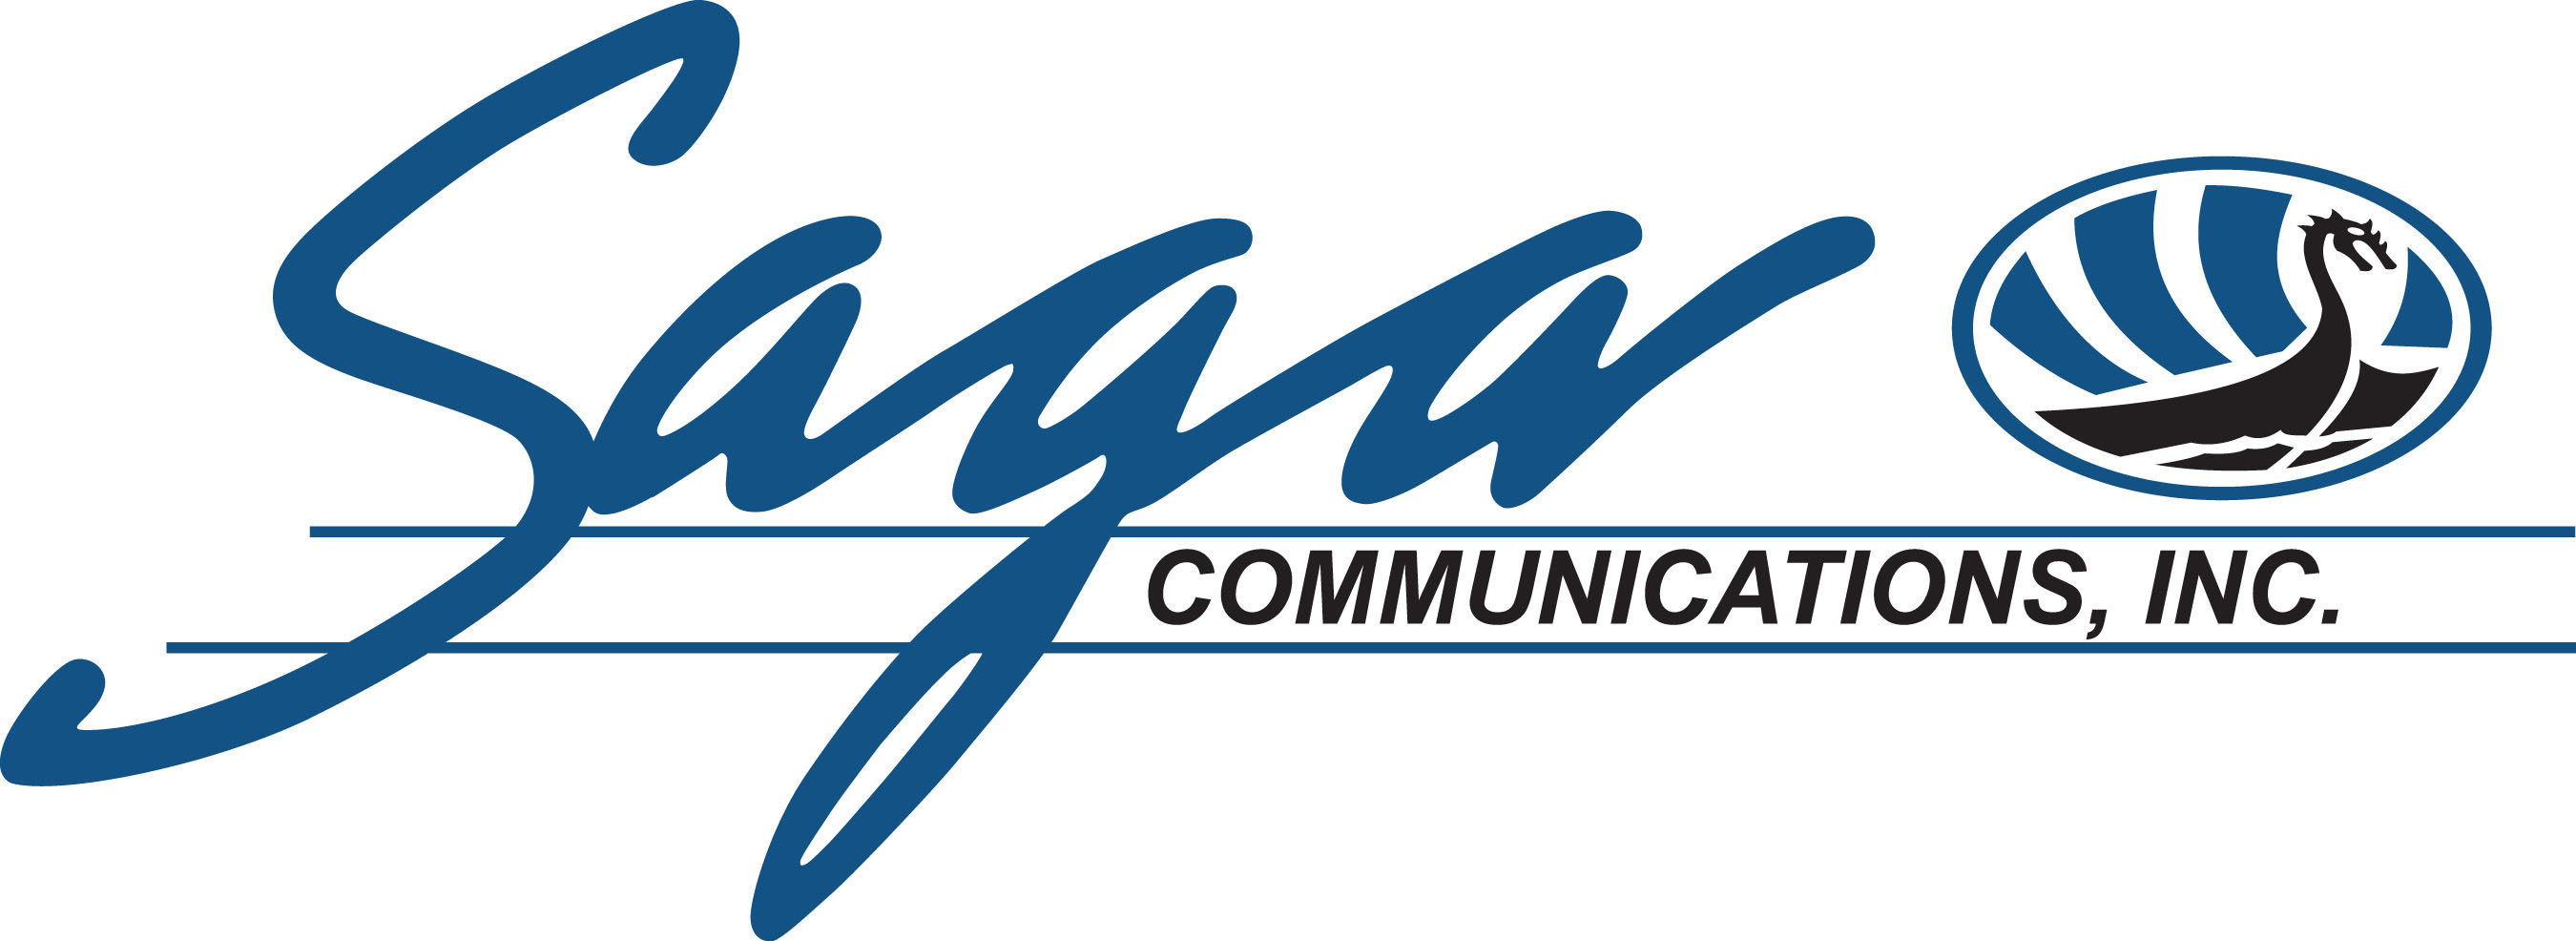 Saga Communications, Inc. Enters into an Agreement to Acquire 3 FM and 2 AM Radio Stations and 1 FM Translator Serving the Harrisonburg, VA Radio Market